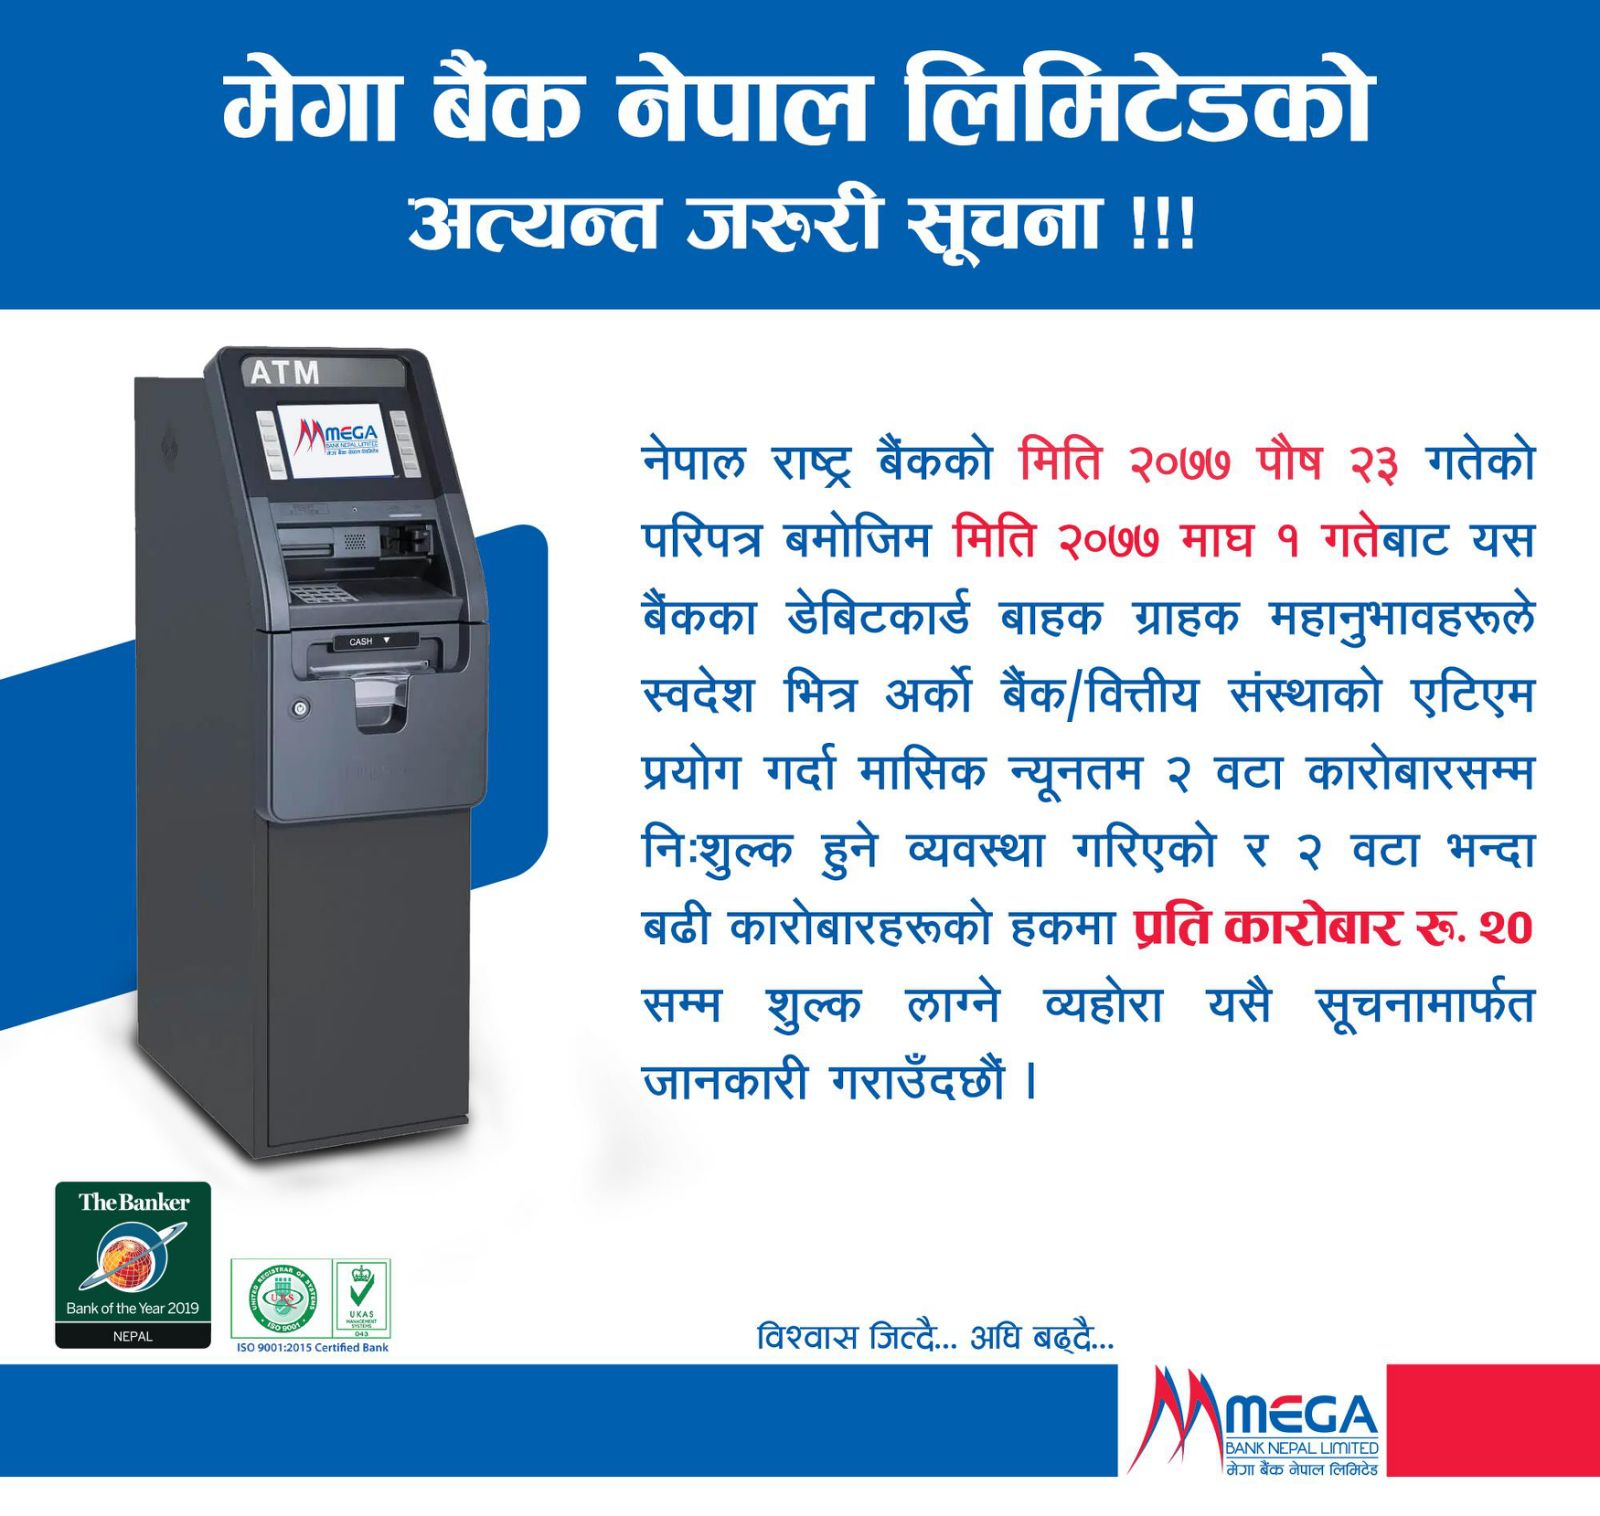 ATM Charge updated